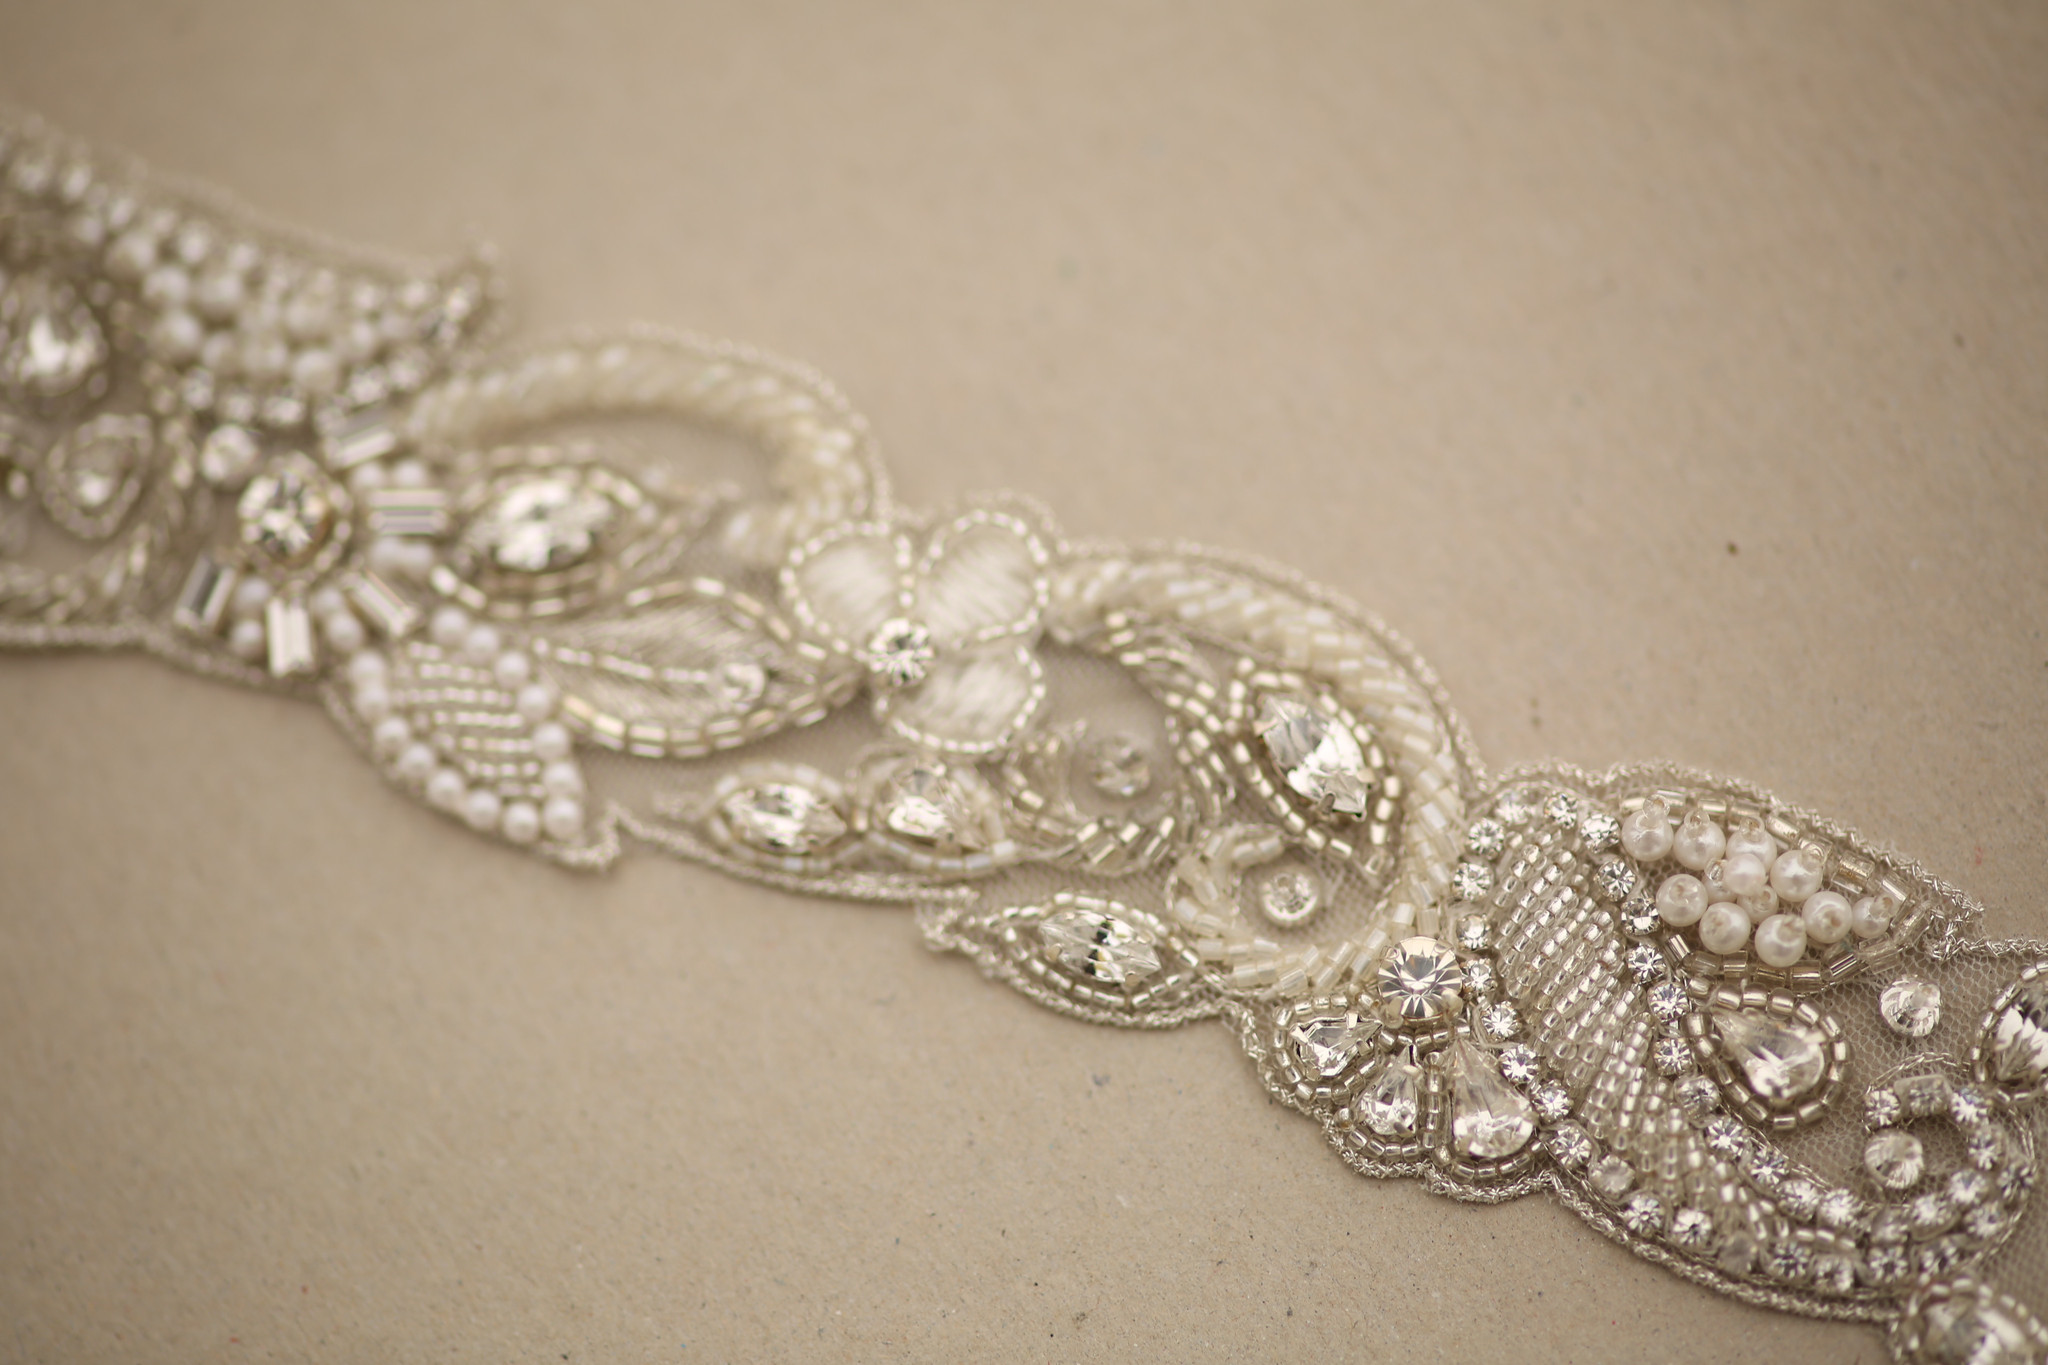 Dress up with embellished bridal accessories belts | Playbuzz